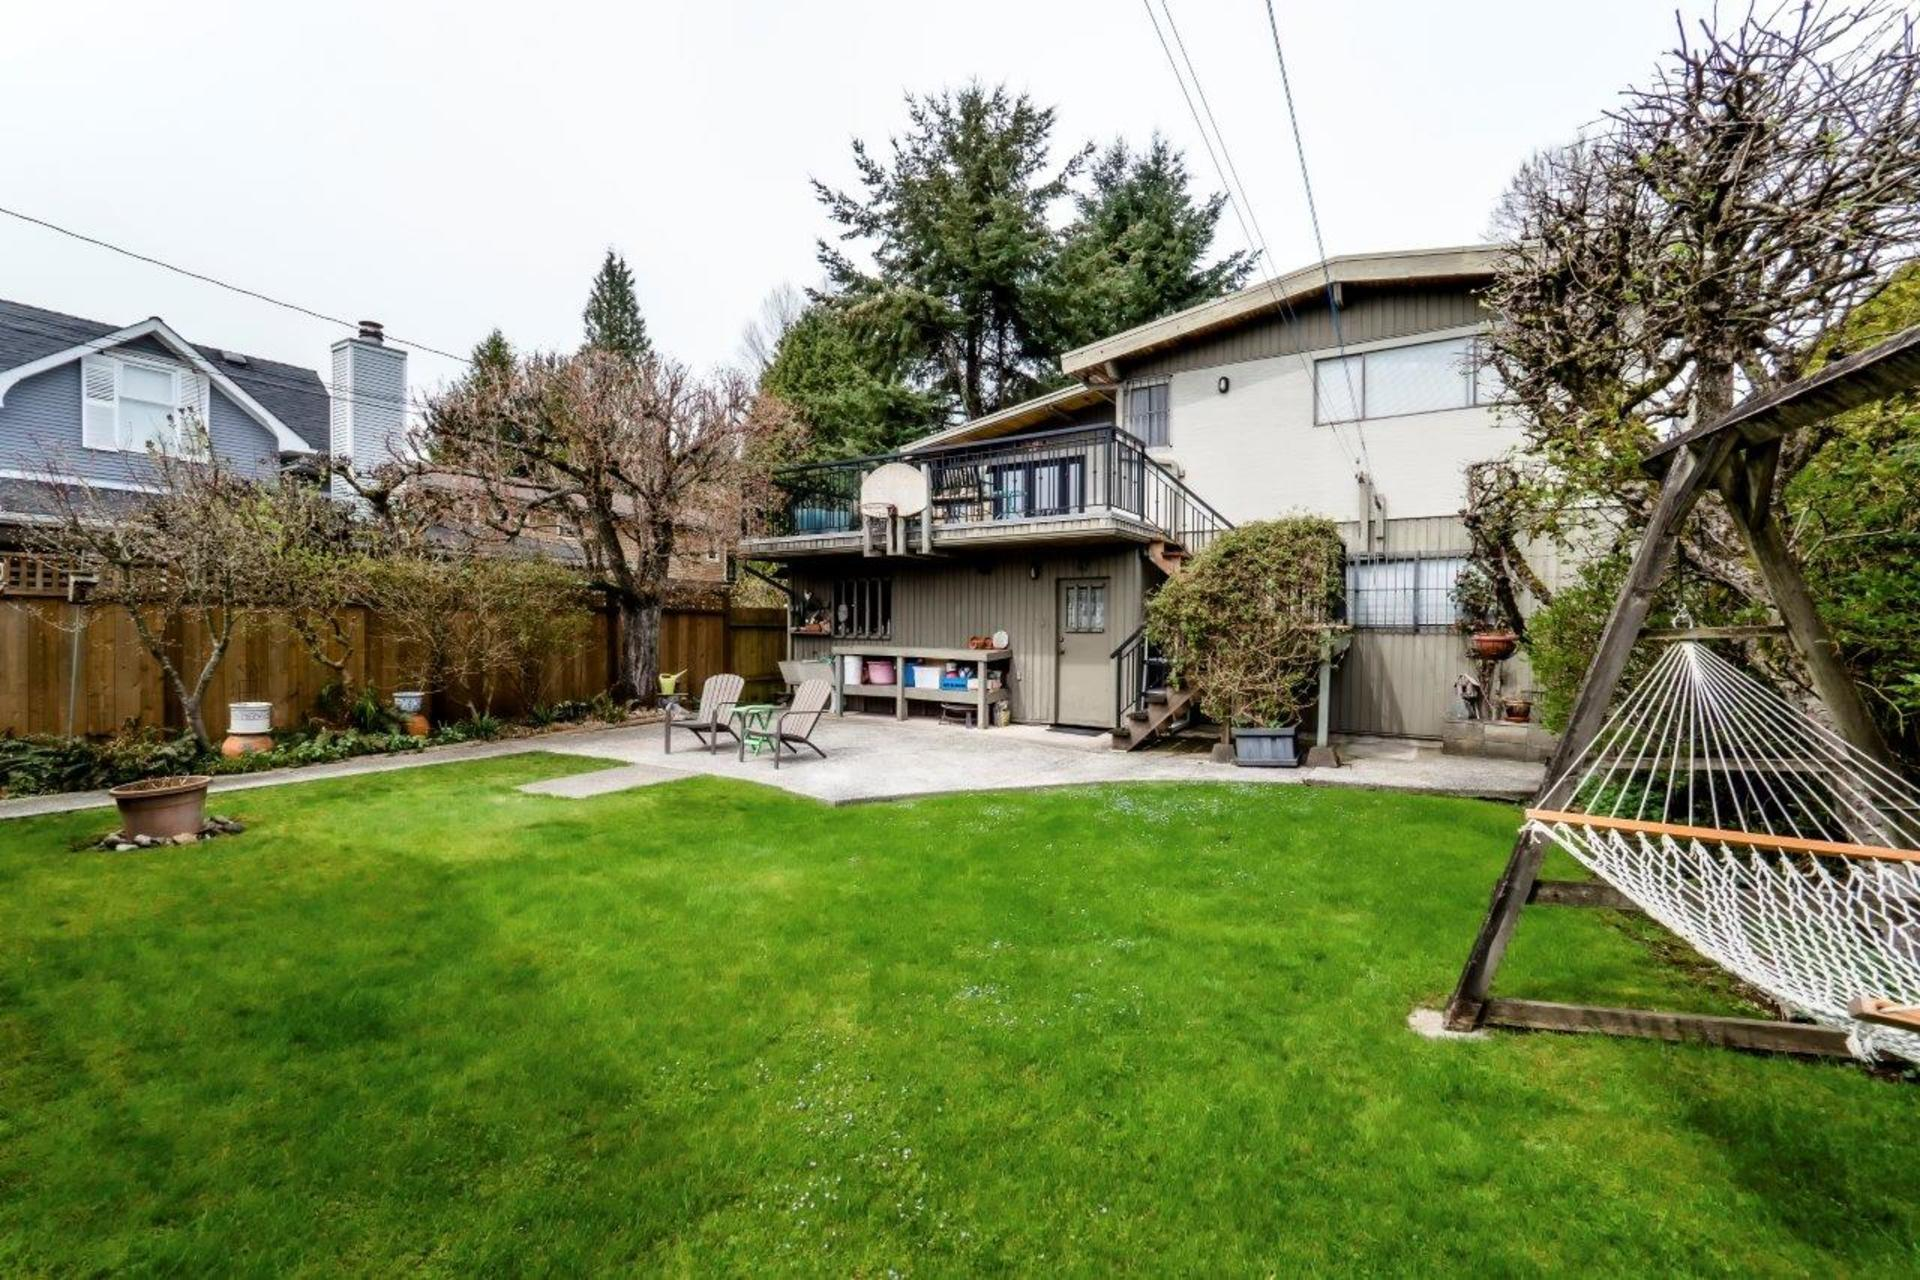 733e18-8 at 733 E 18th Street, Boulevard, North Vancouver